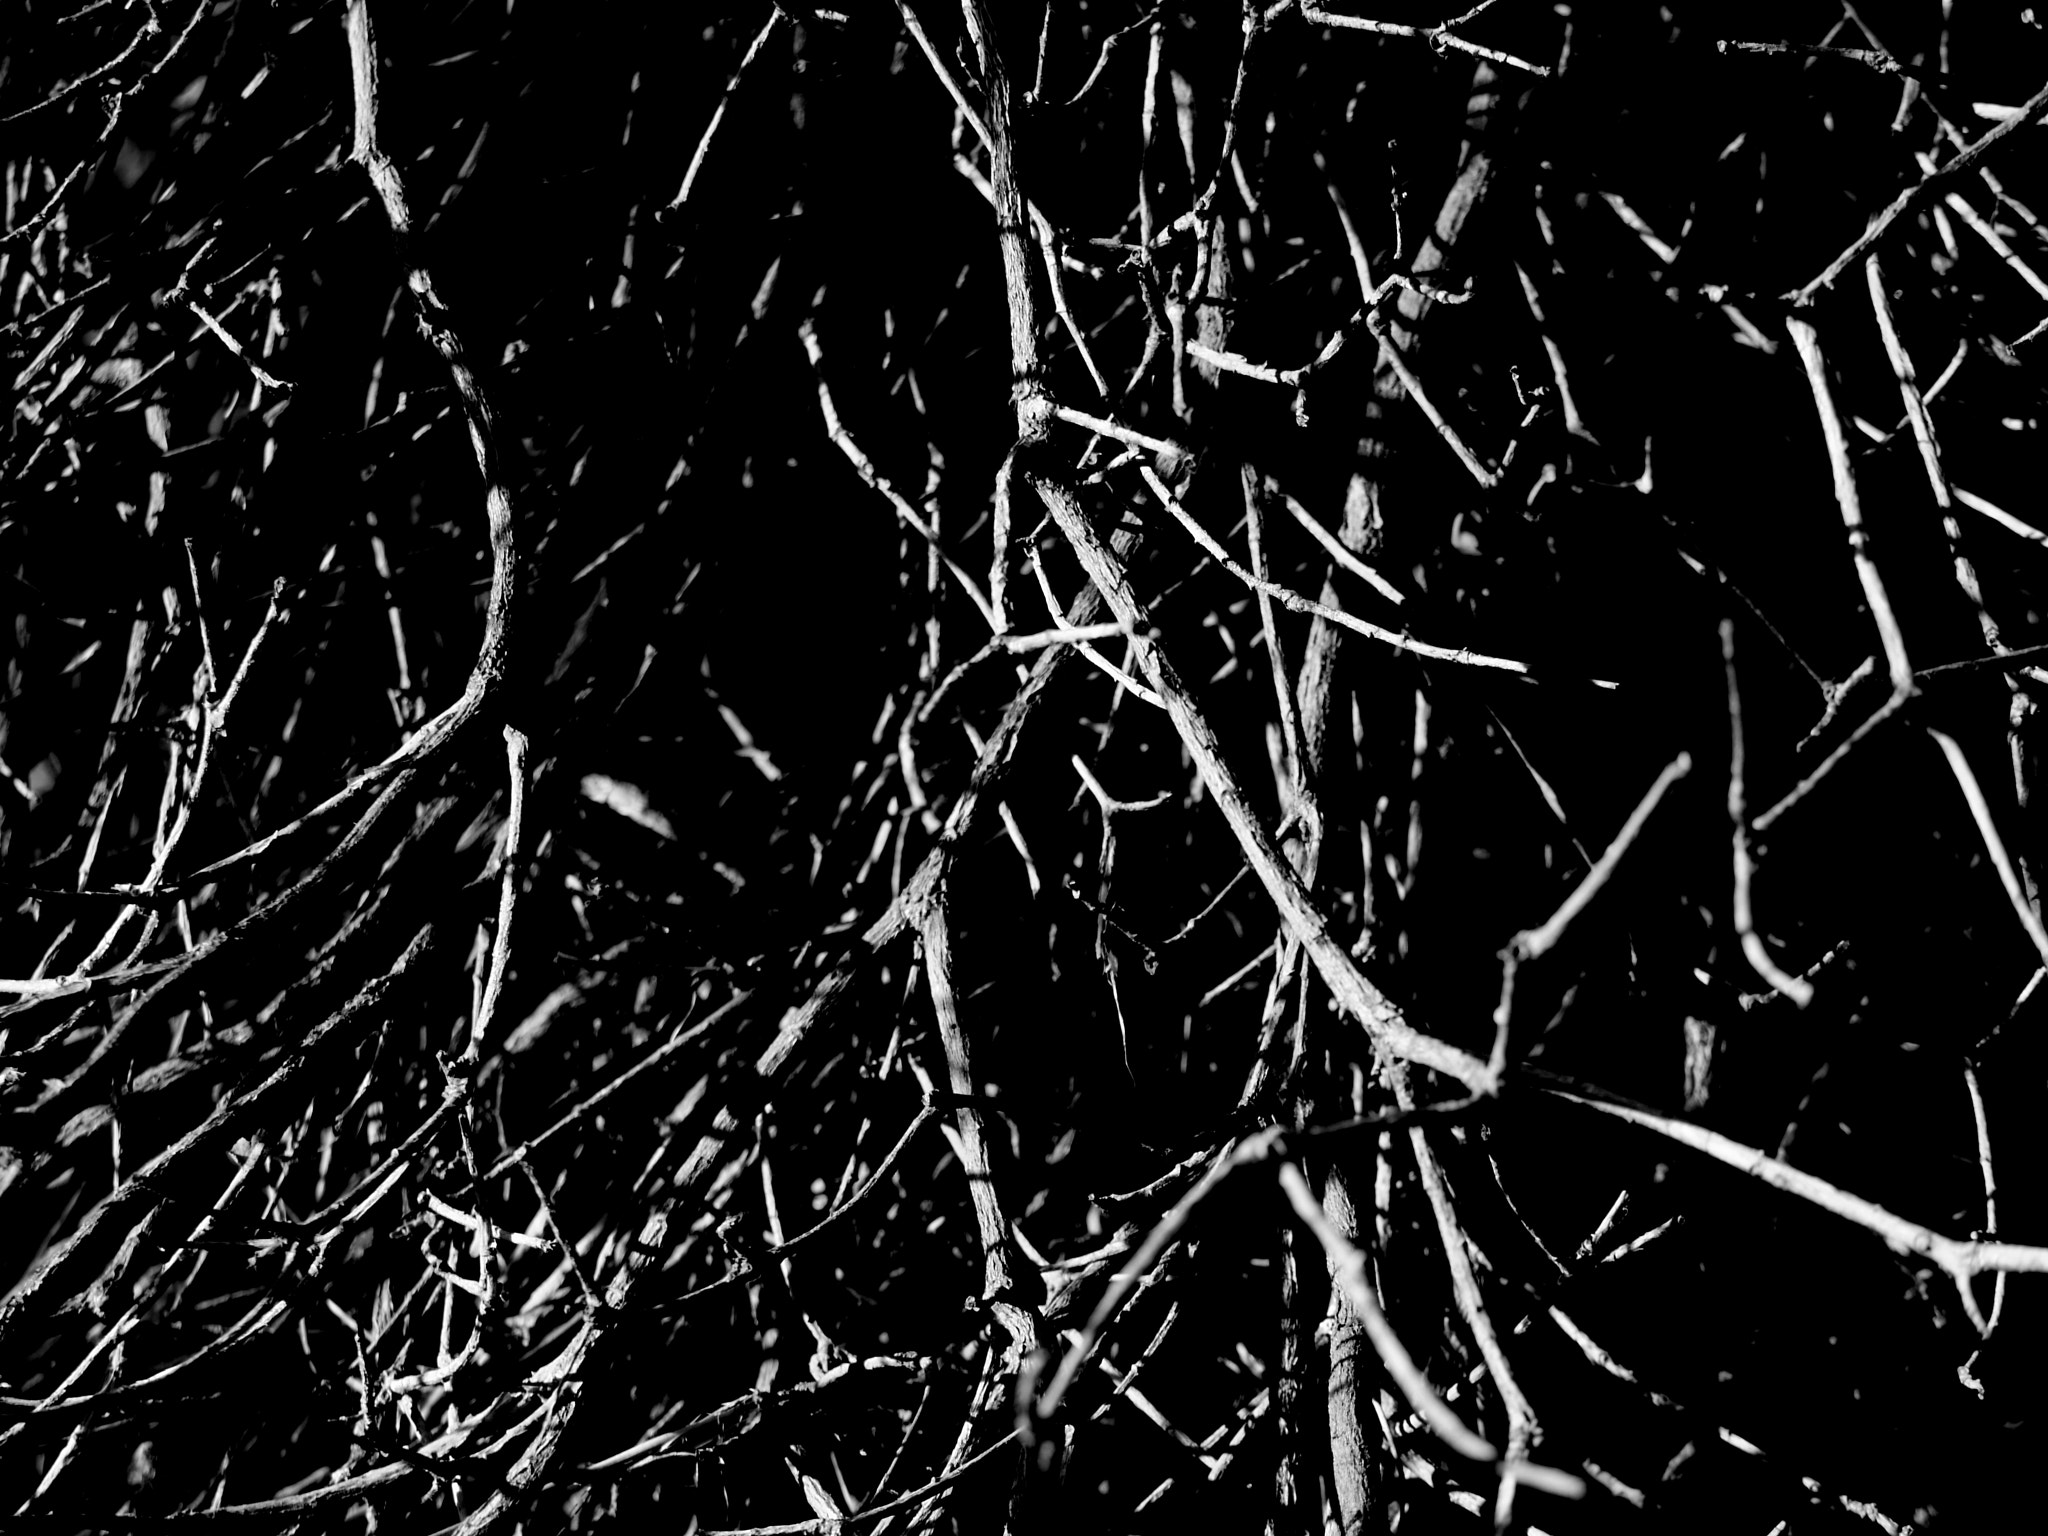 Photograph Twisted branches by Federichina Stregatto on 500px